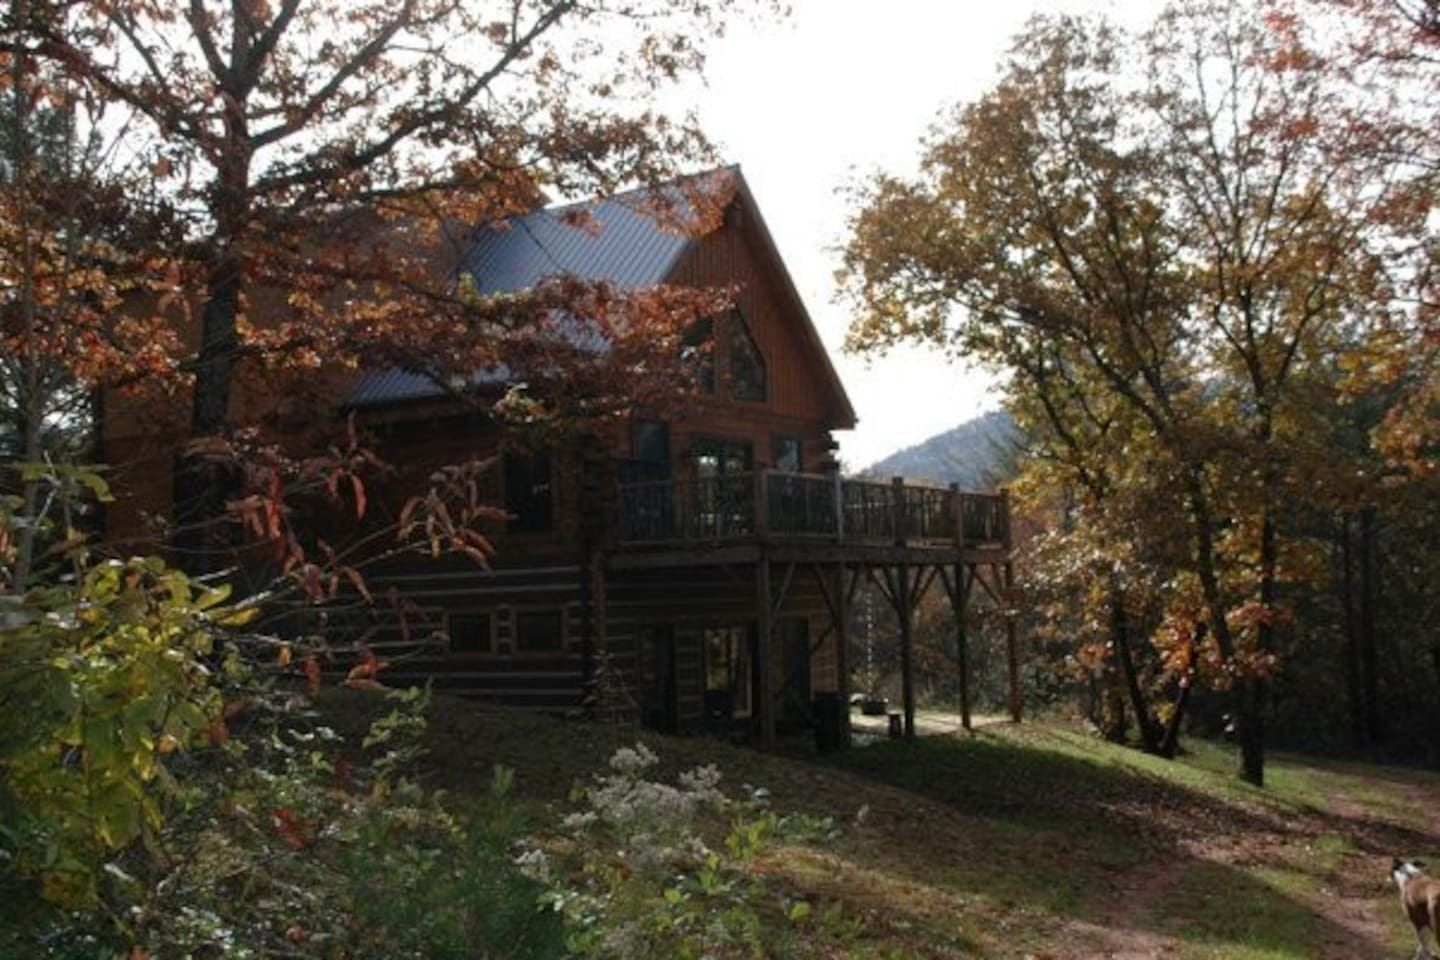 Rustic Log Cabin Rural Private Cabins For Rent In Otto North Carolina 55 Night Recommended By Simone D S Friend Dev Cabin Vacation Log Cabin